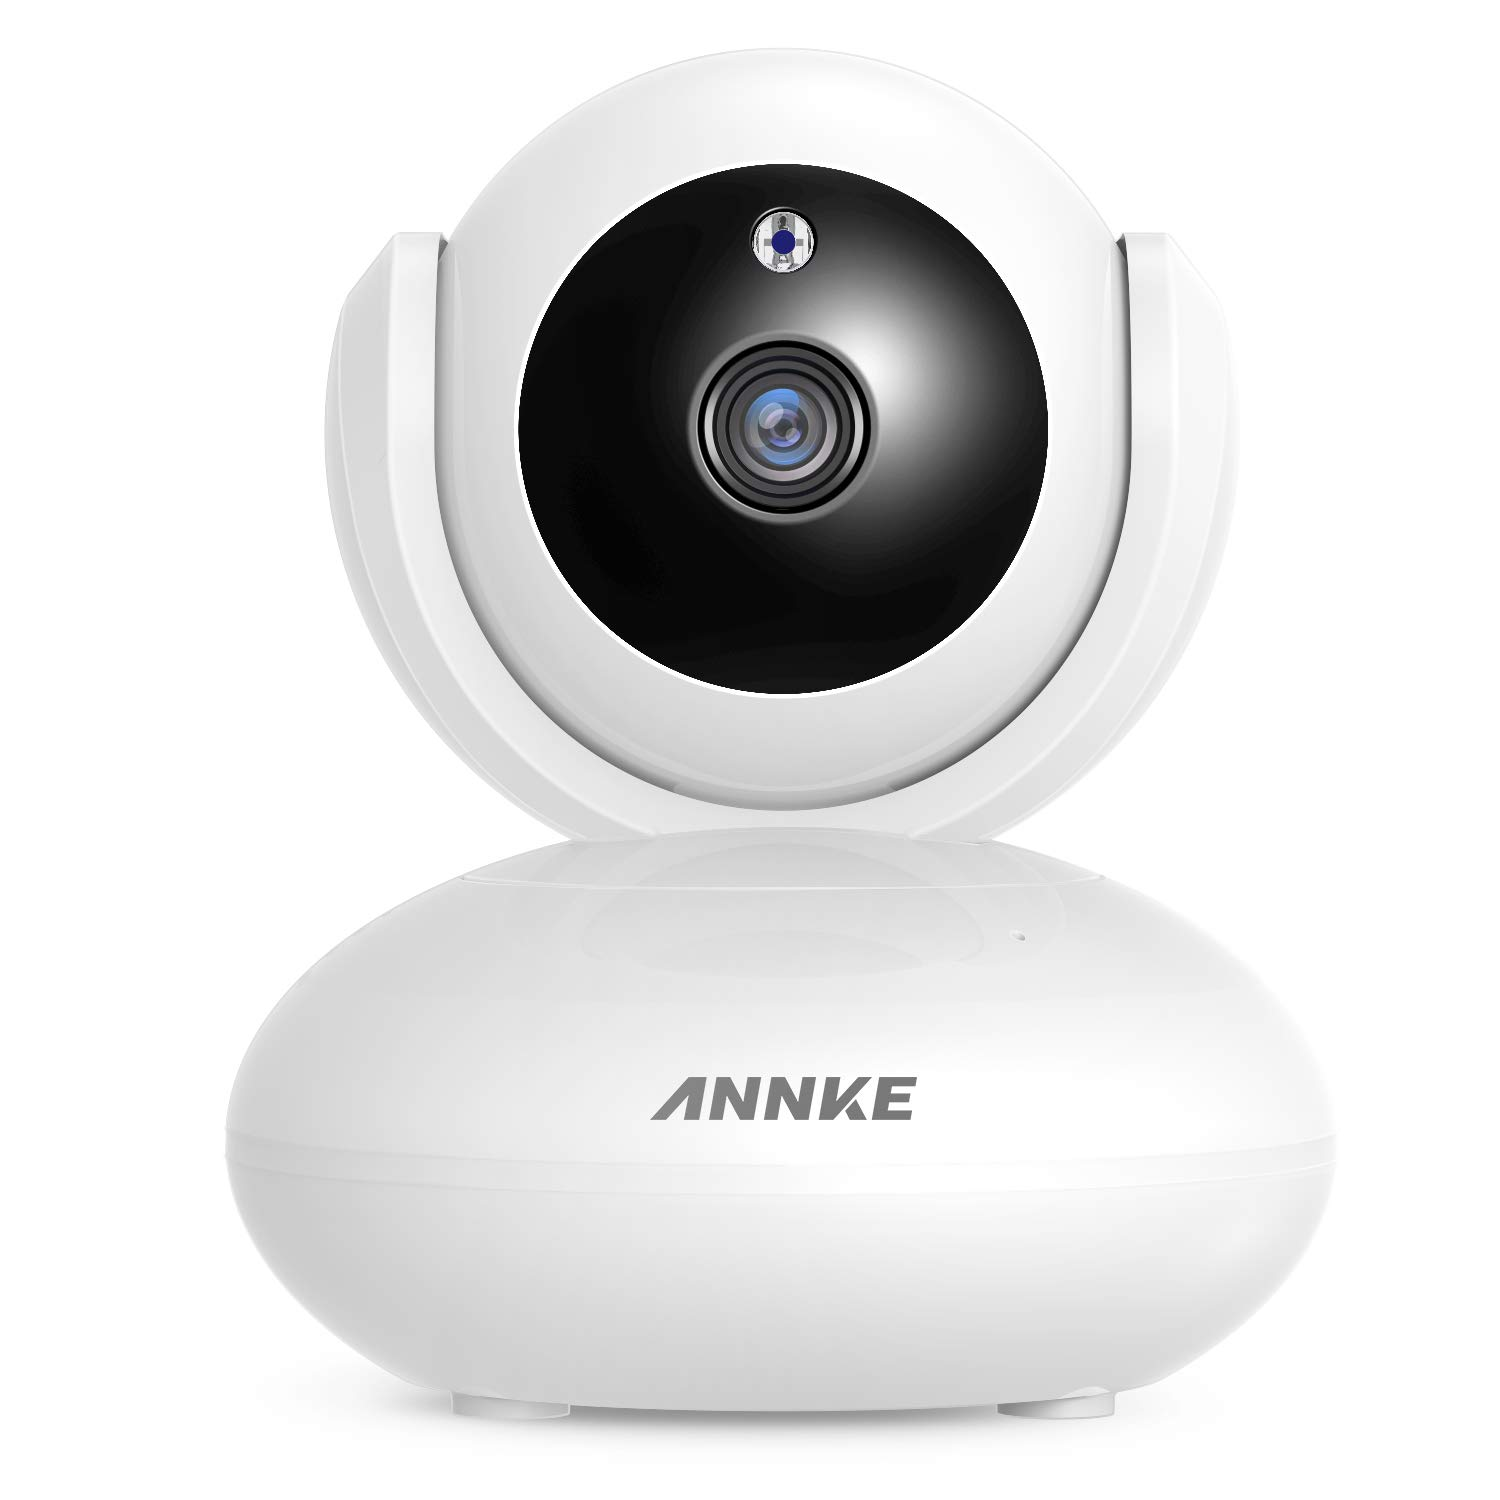 40% off ANNKE IP Camera 1080P Smart Home Wireless Security Camera